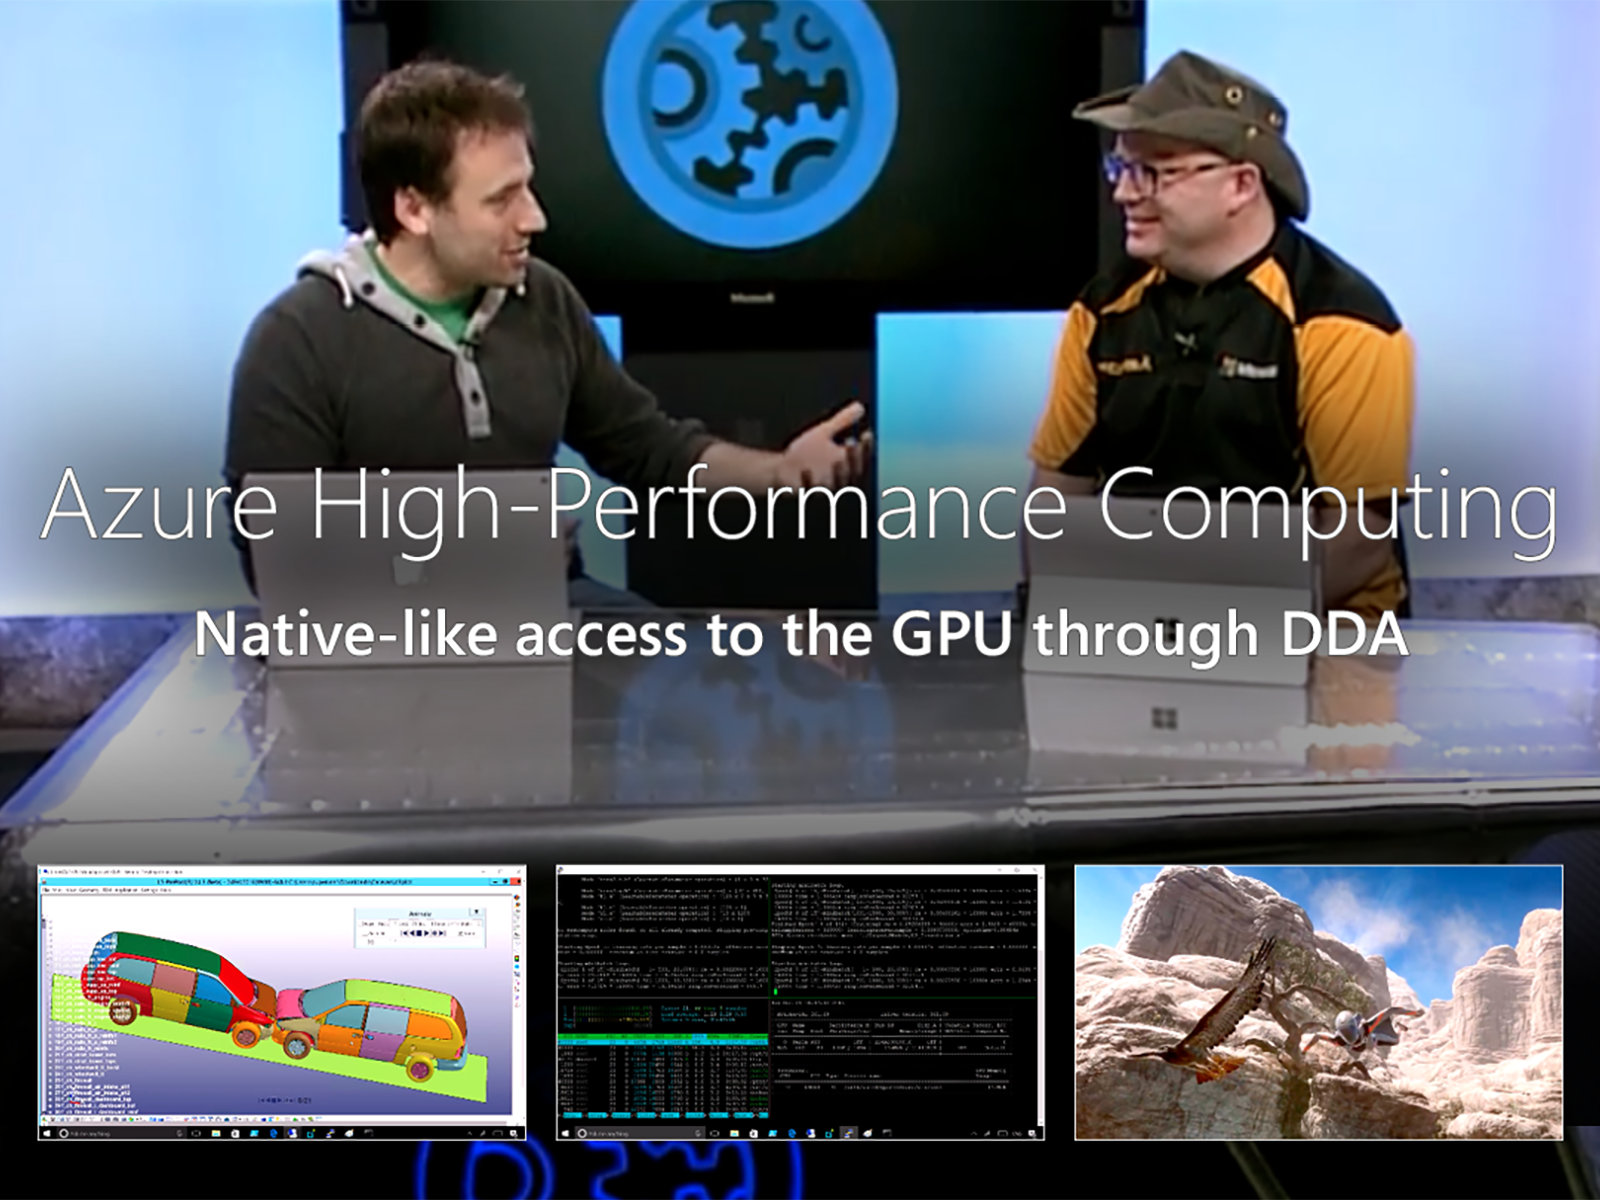 Artwork for Azure High-Performance Computing